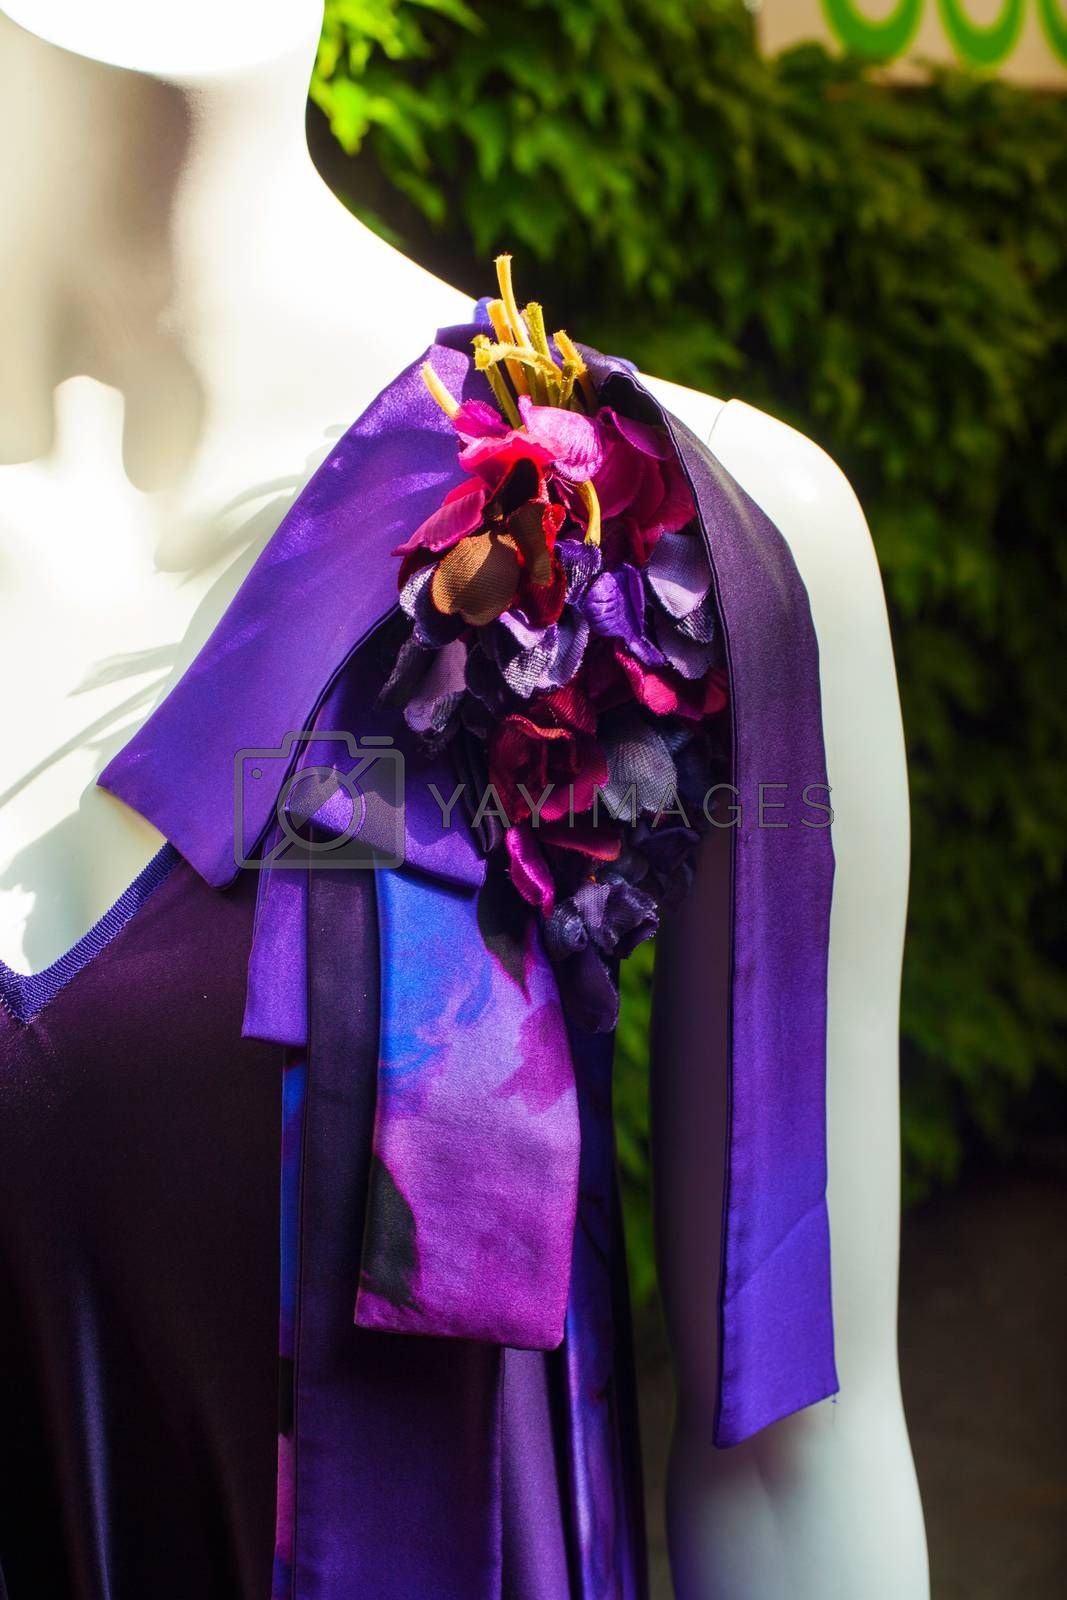 View of female purple dress with ribbon